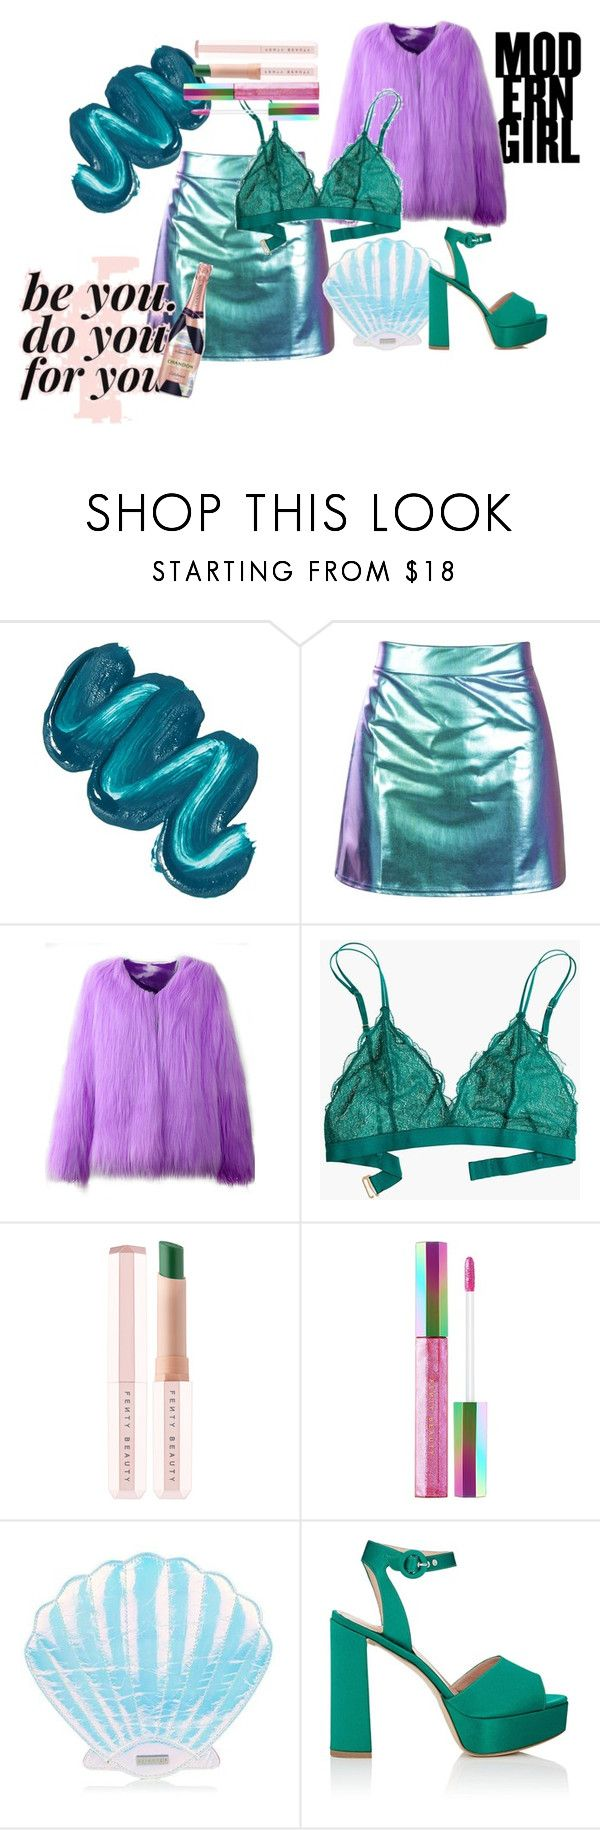 """""""Mermaid vibes"""" by flypah99 ❤ liked on Polyvore featuring Mermaid Salon, Madewell, Puma, Barneys New York and Rebecca Minkoff"""